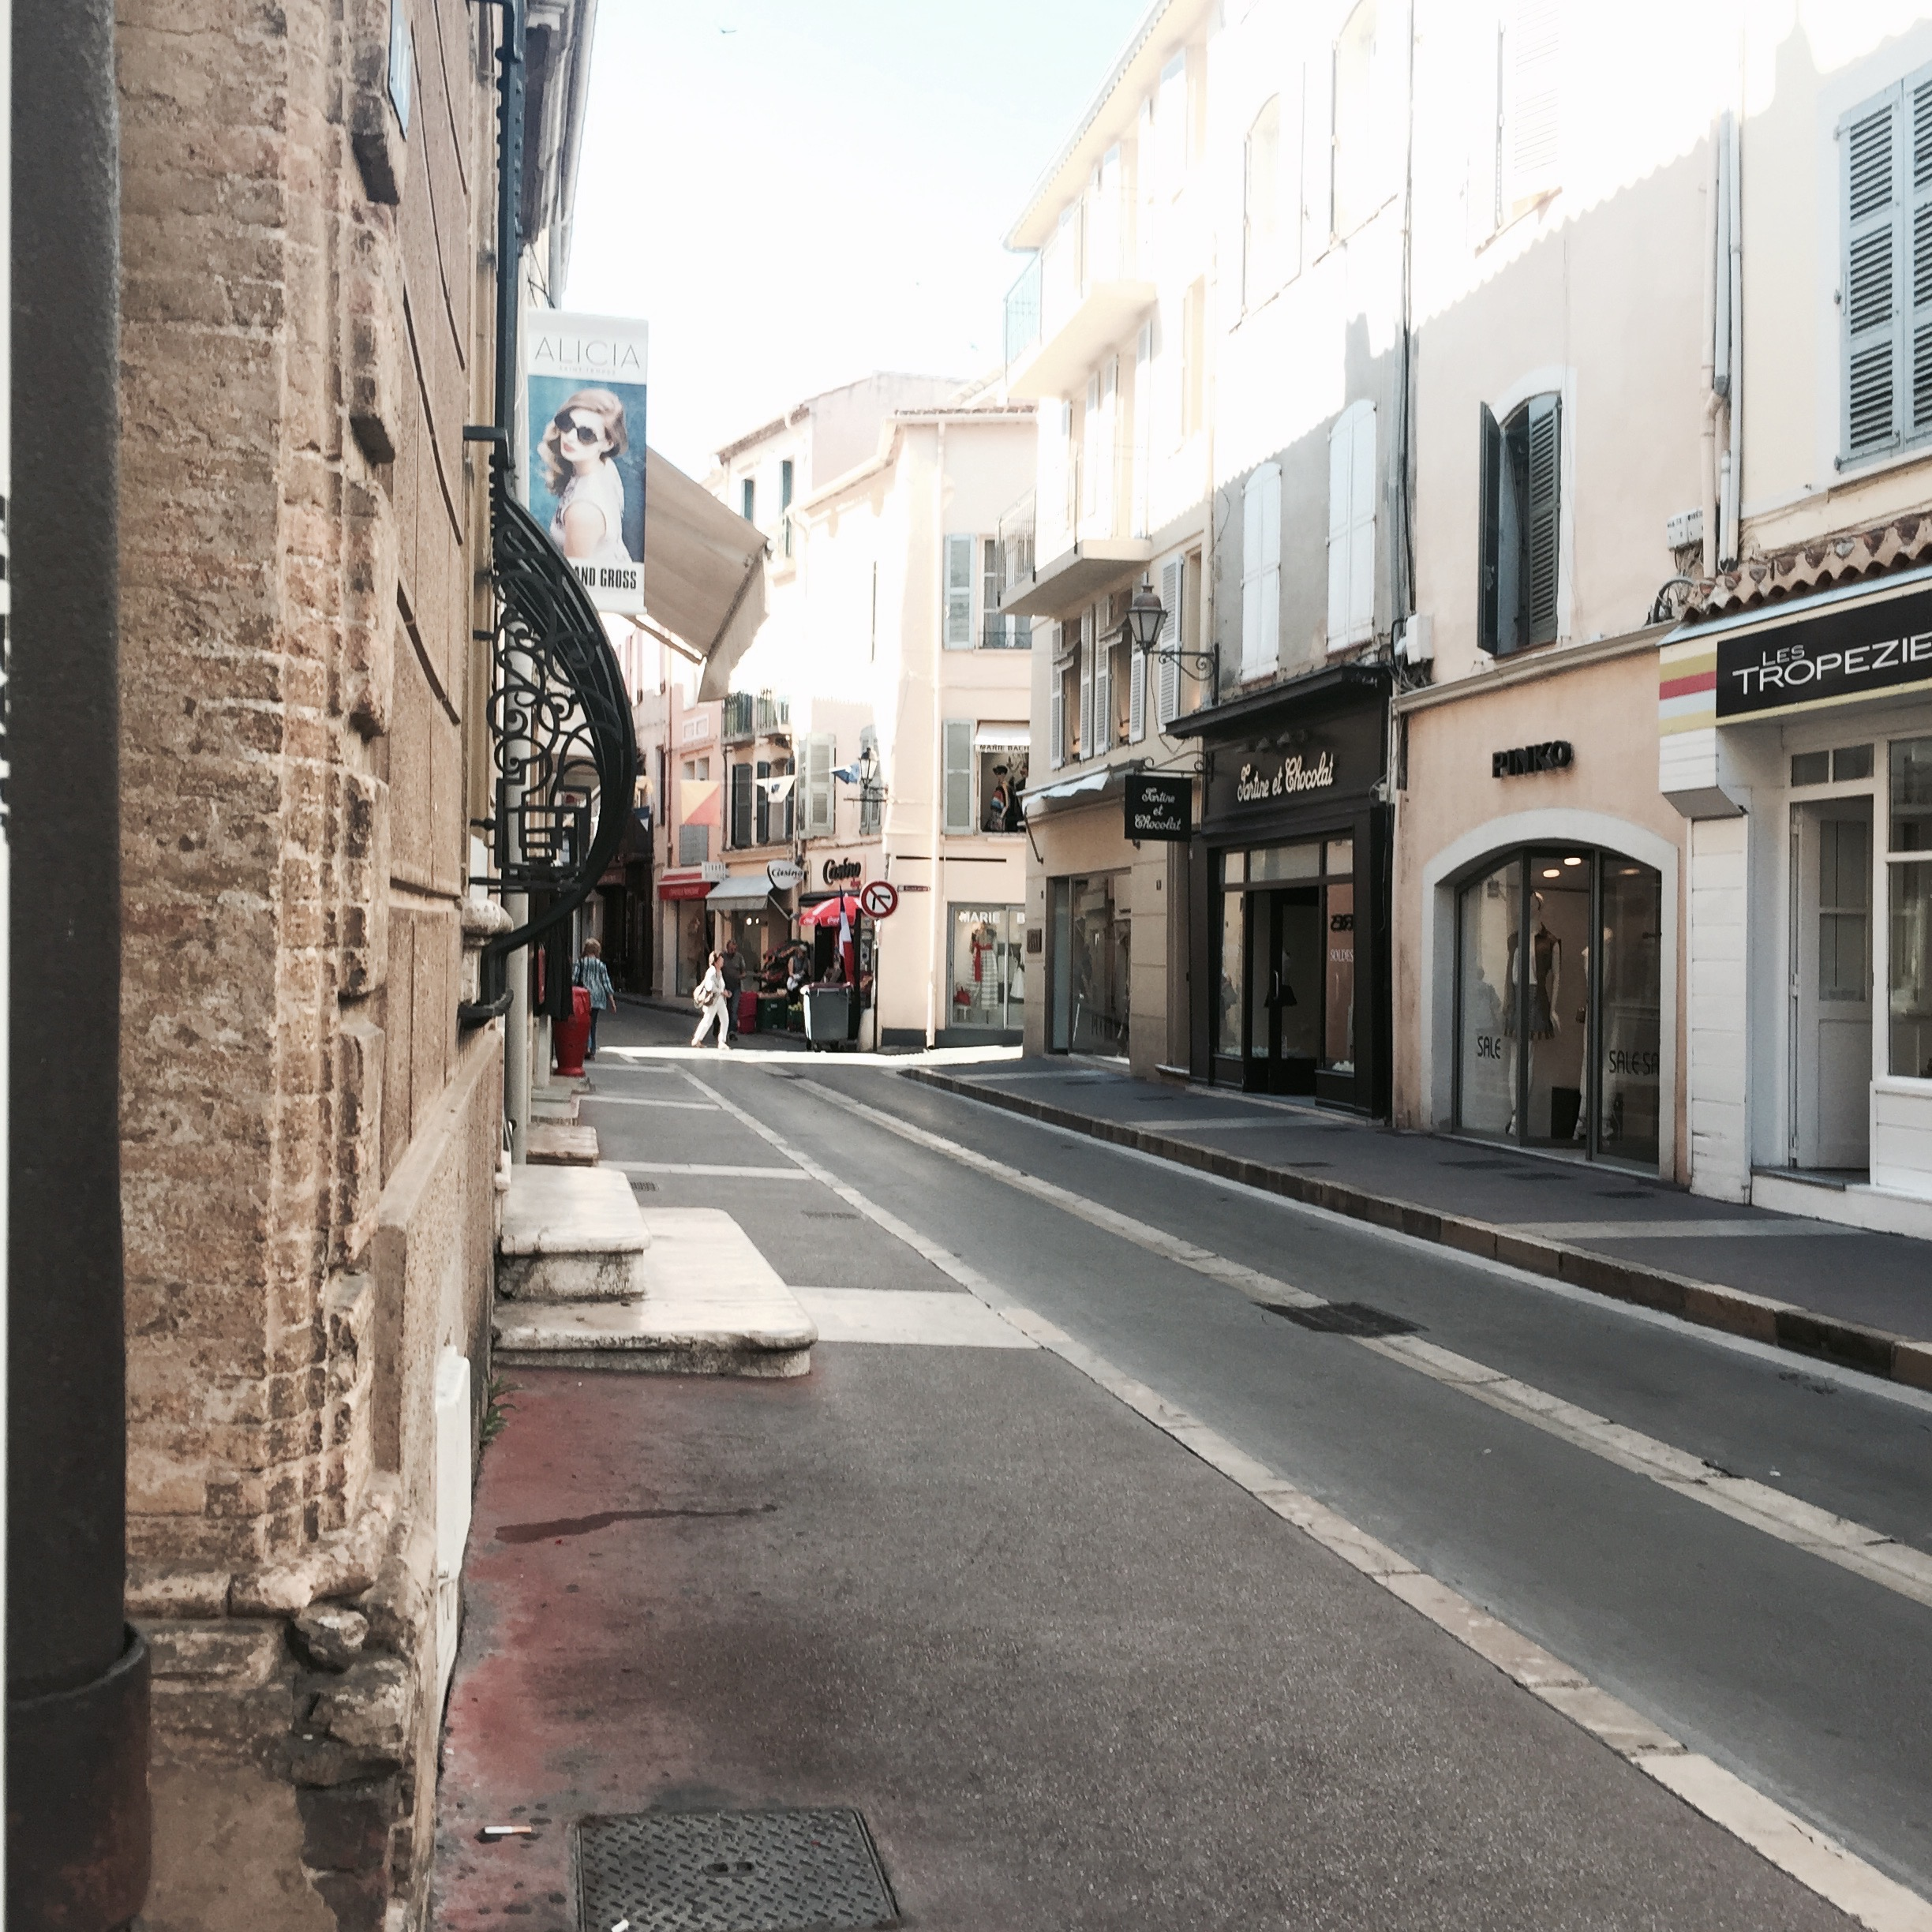 A St. Tropez shopping street in early morning.